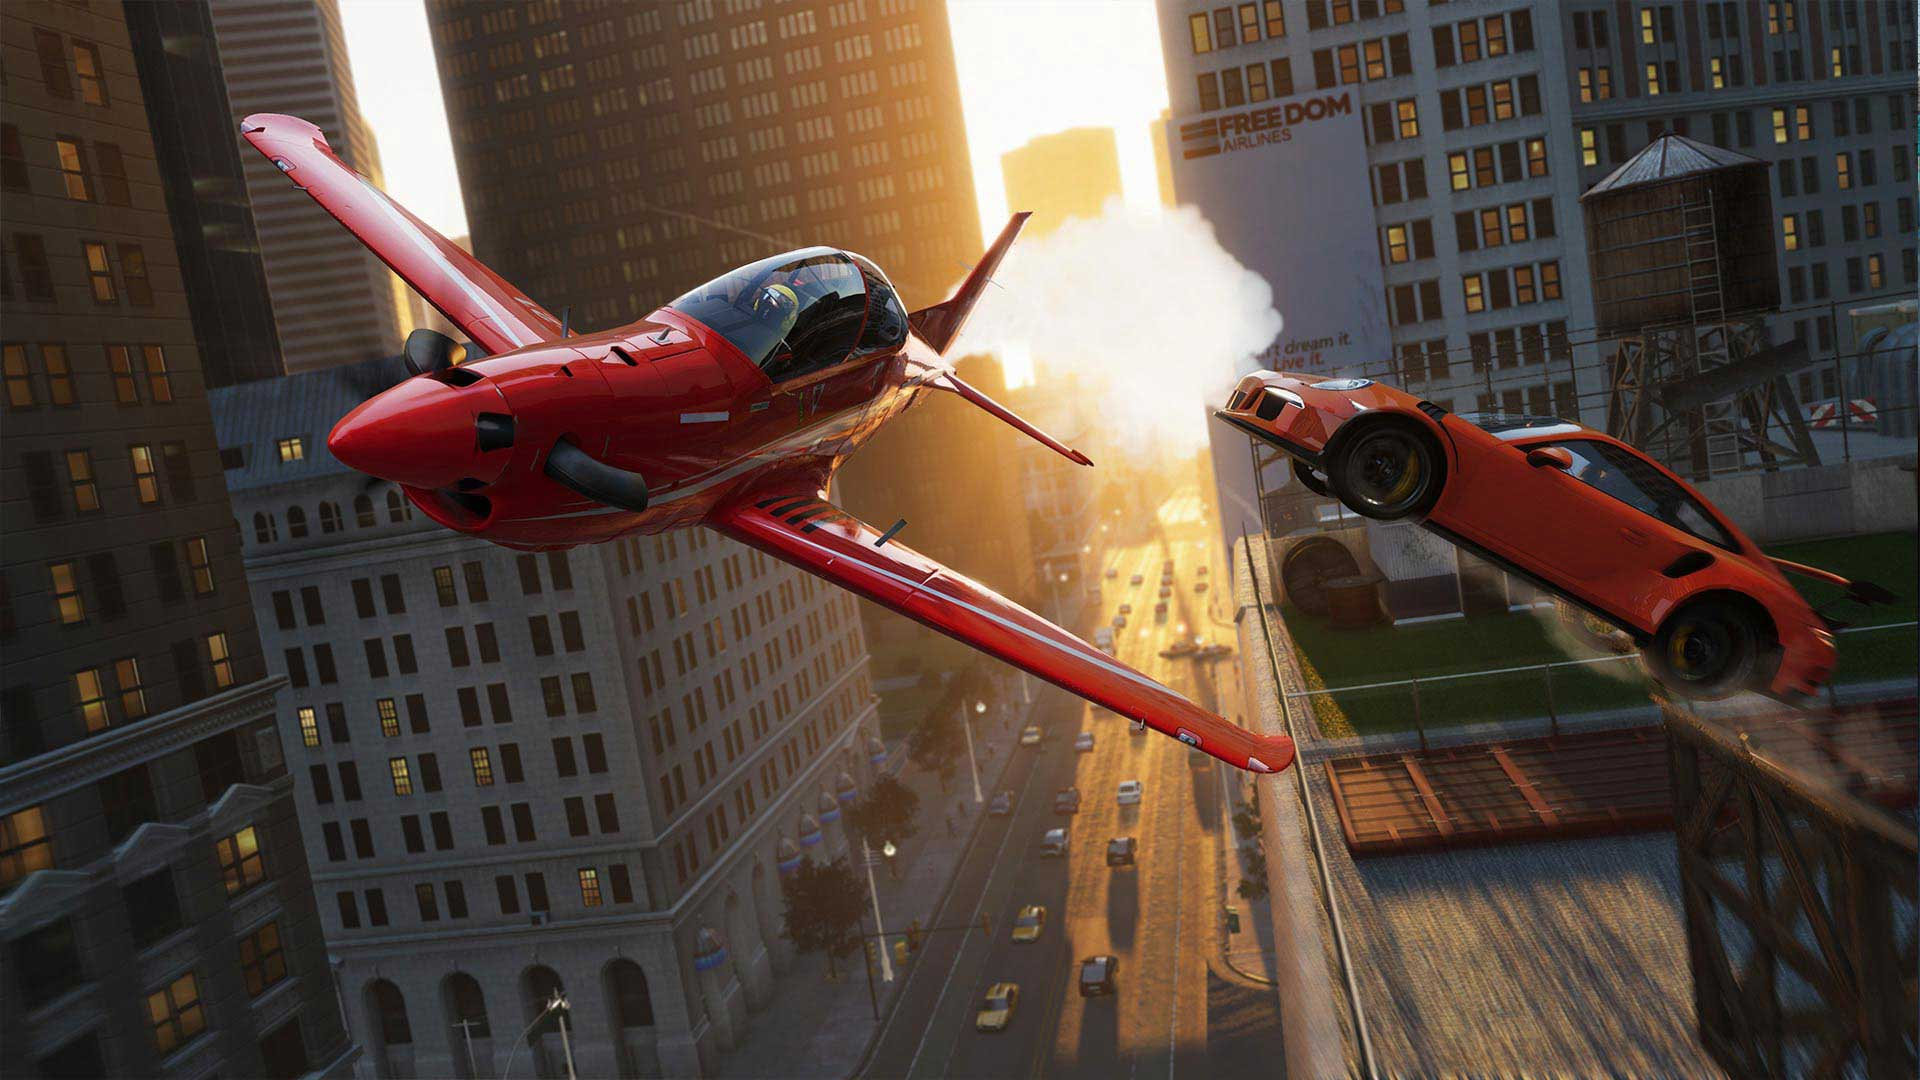 Place 9 out of 10: The Crew 2